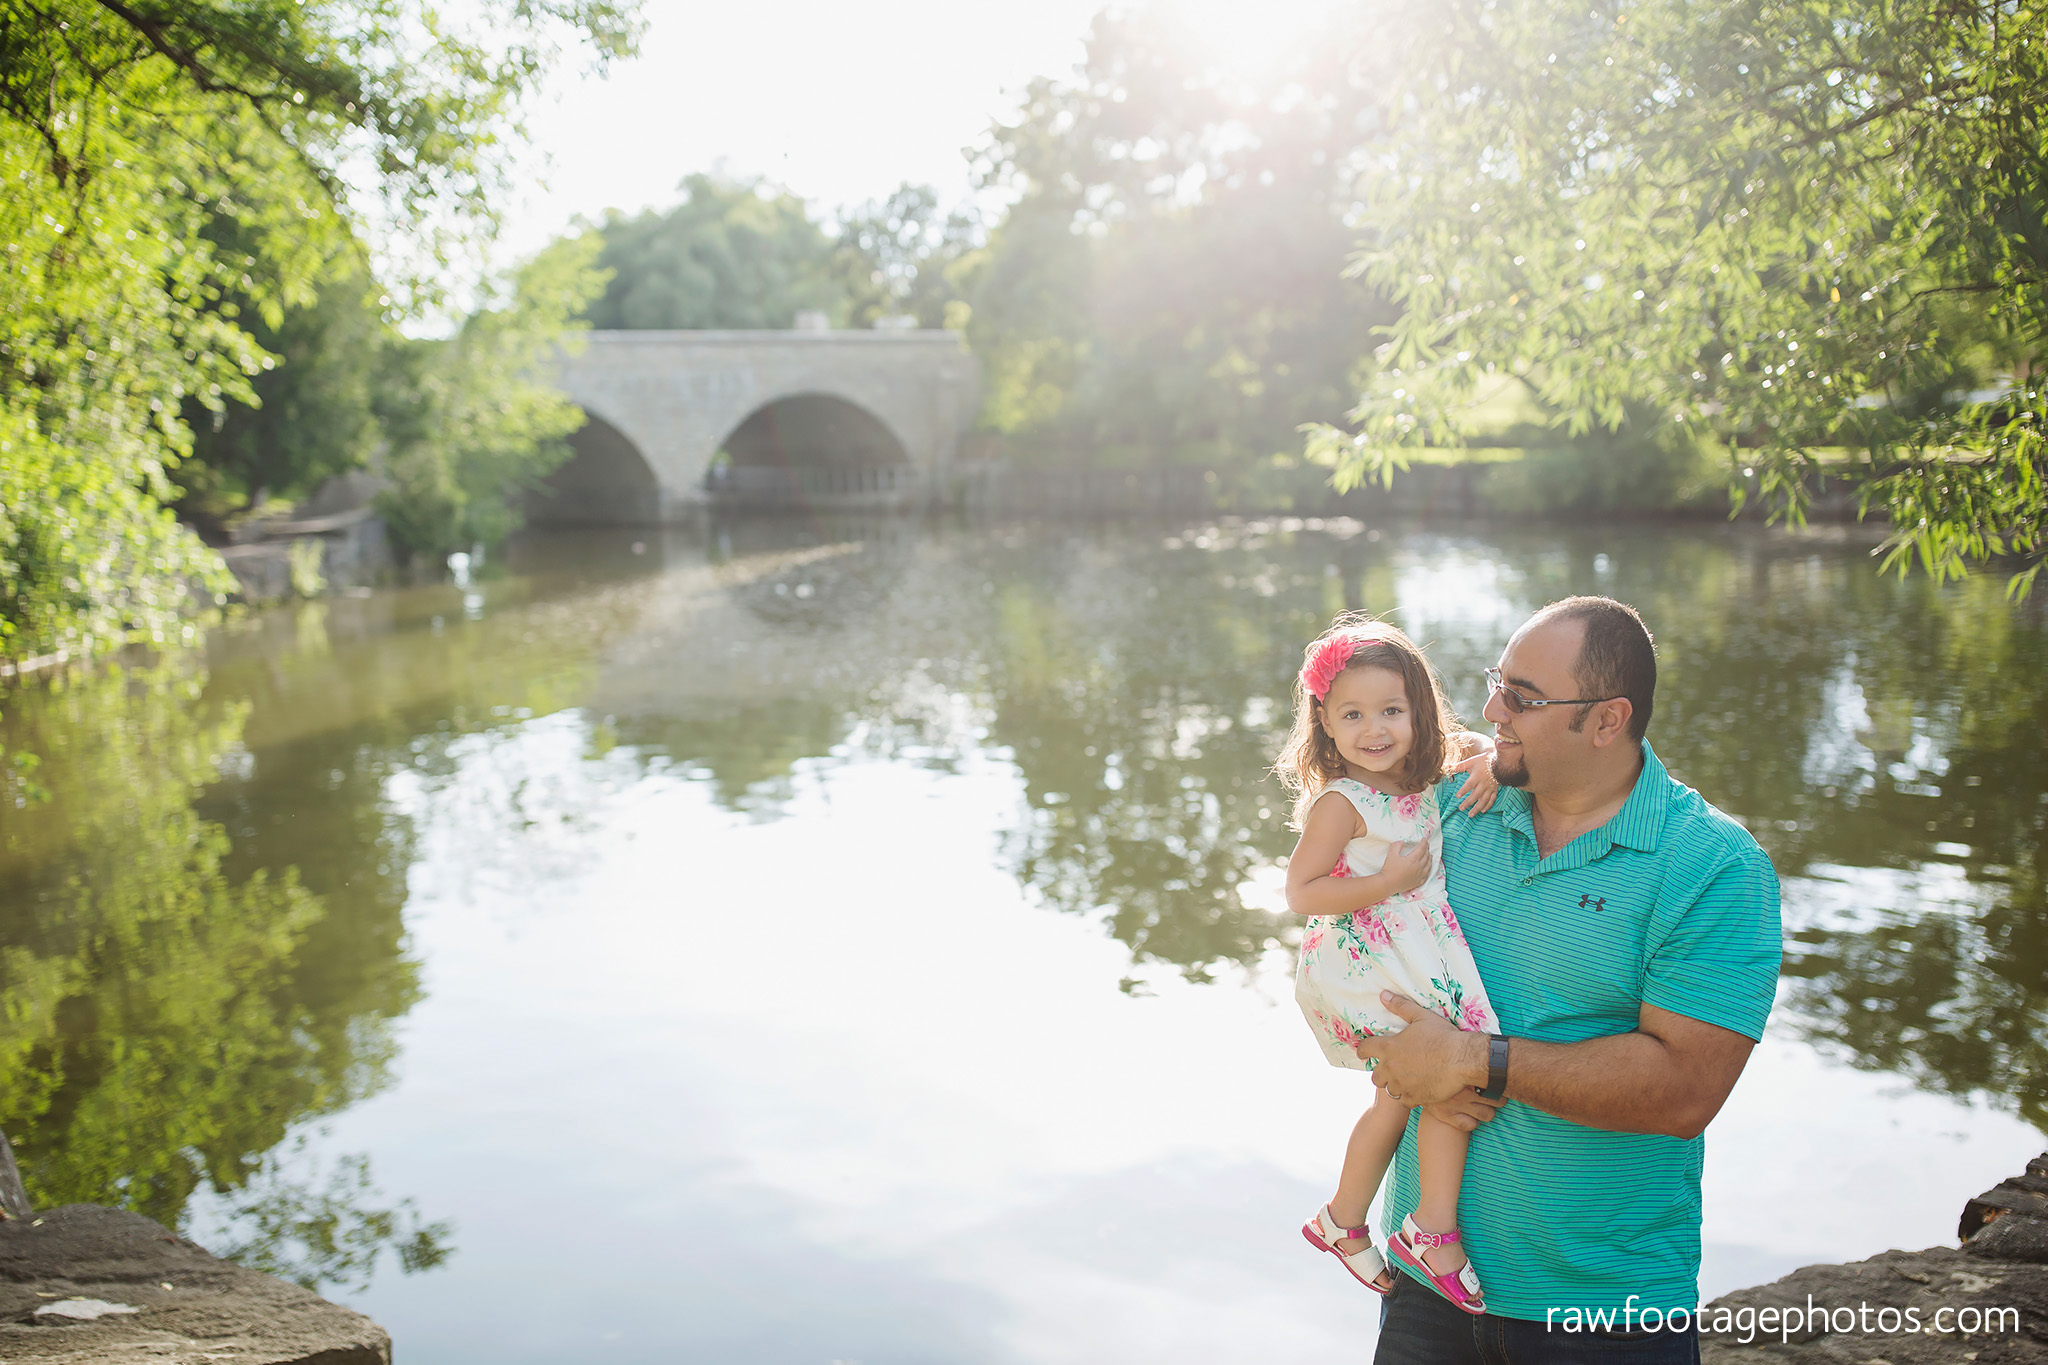 london_ontario_family_photographer-stratford_ontario_photographer-raw_footage_photography-lifestyle_photography-candid-golden_hour008.jpg